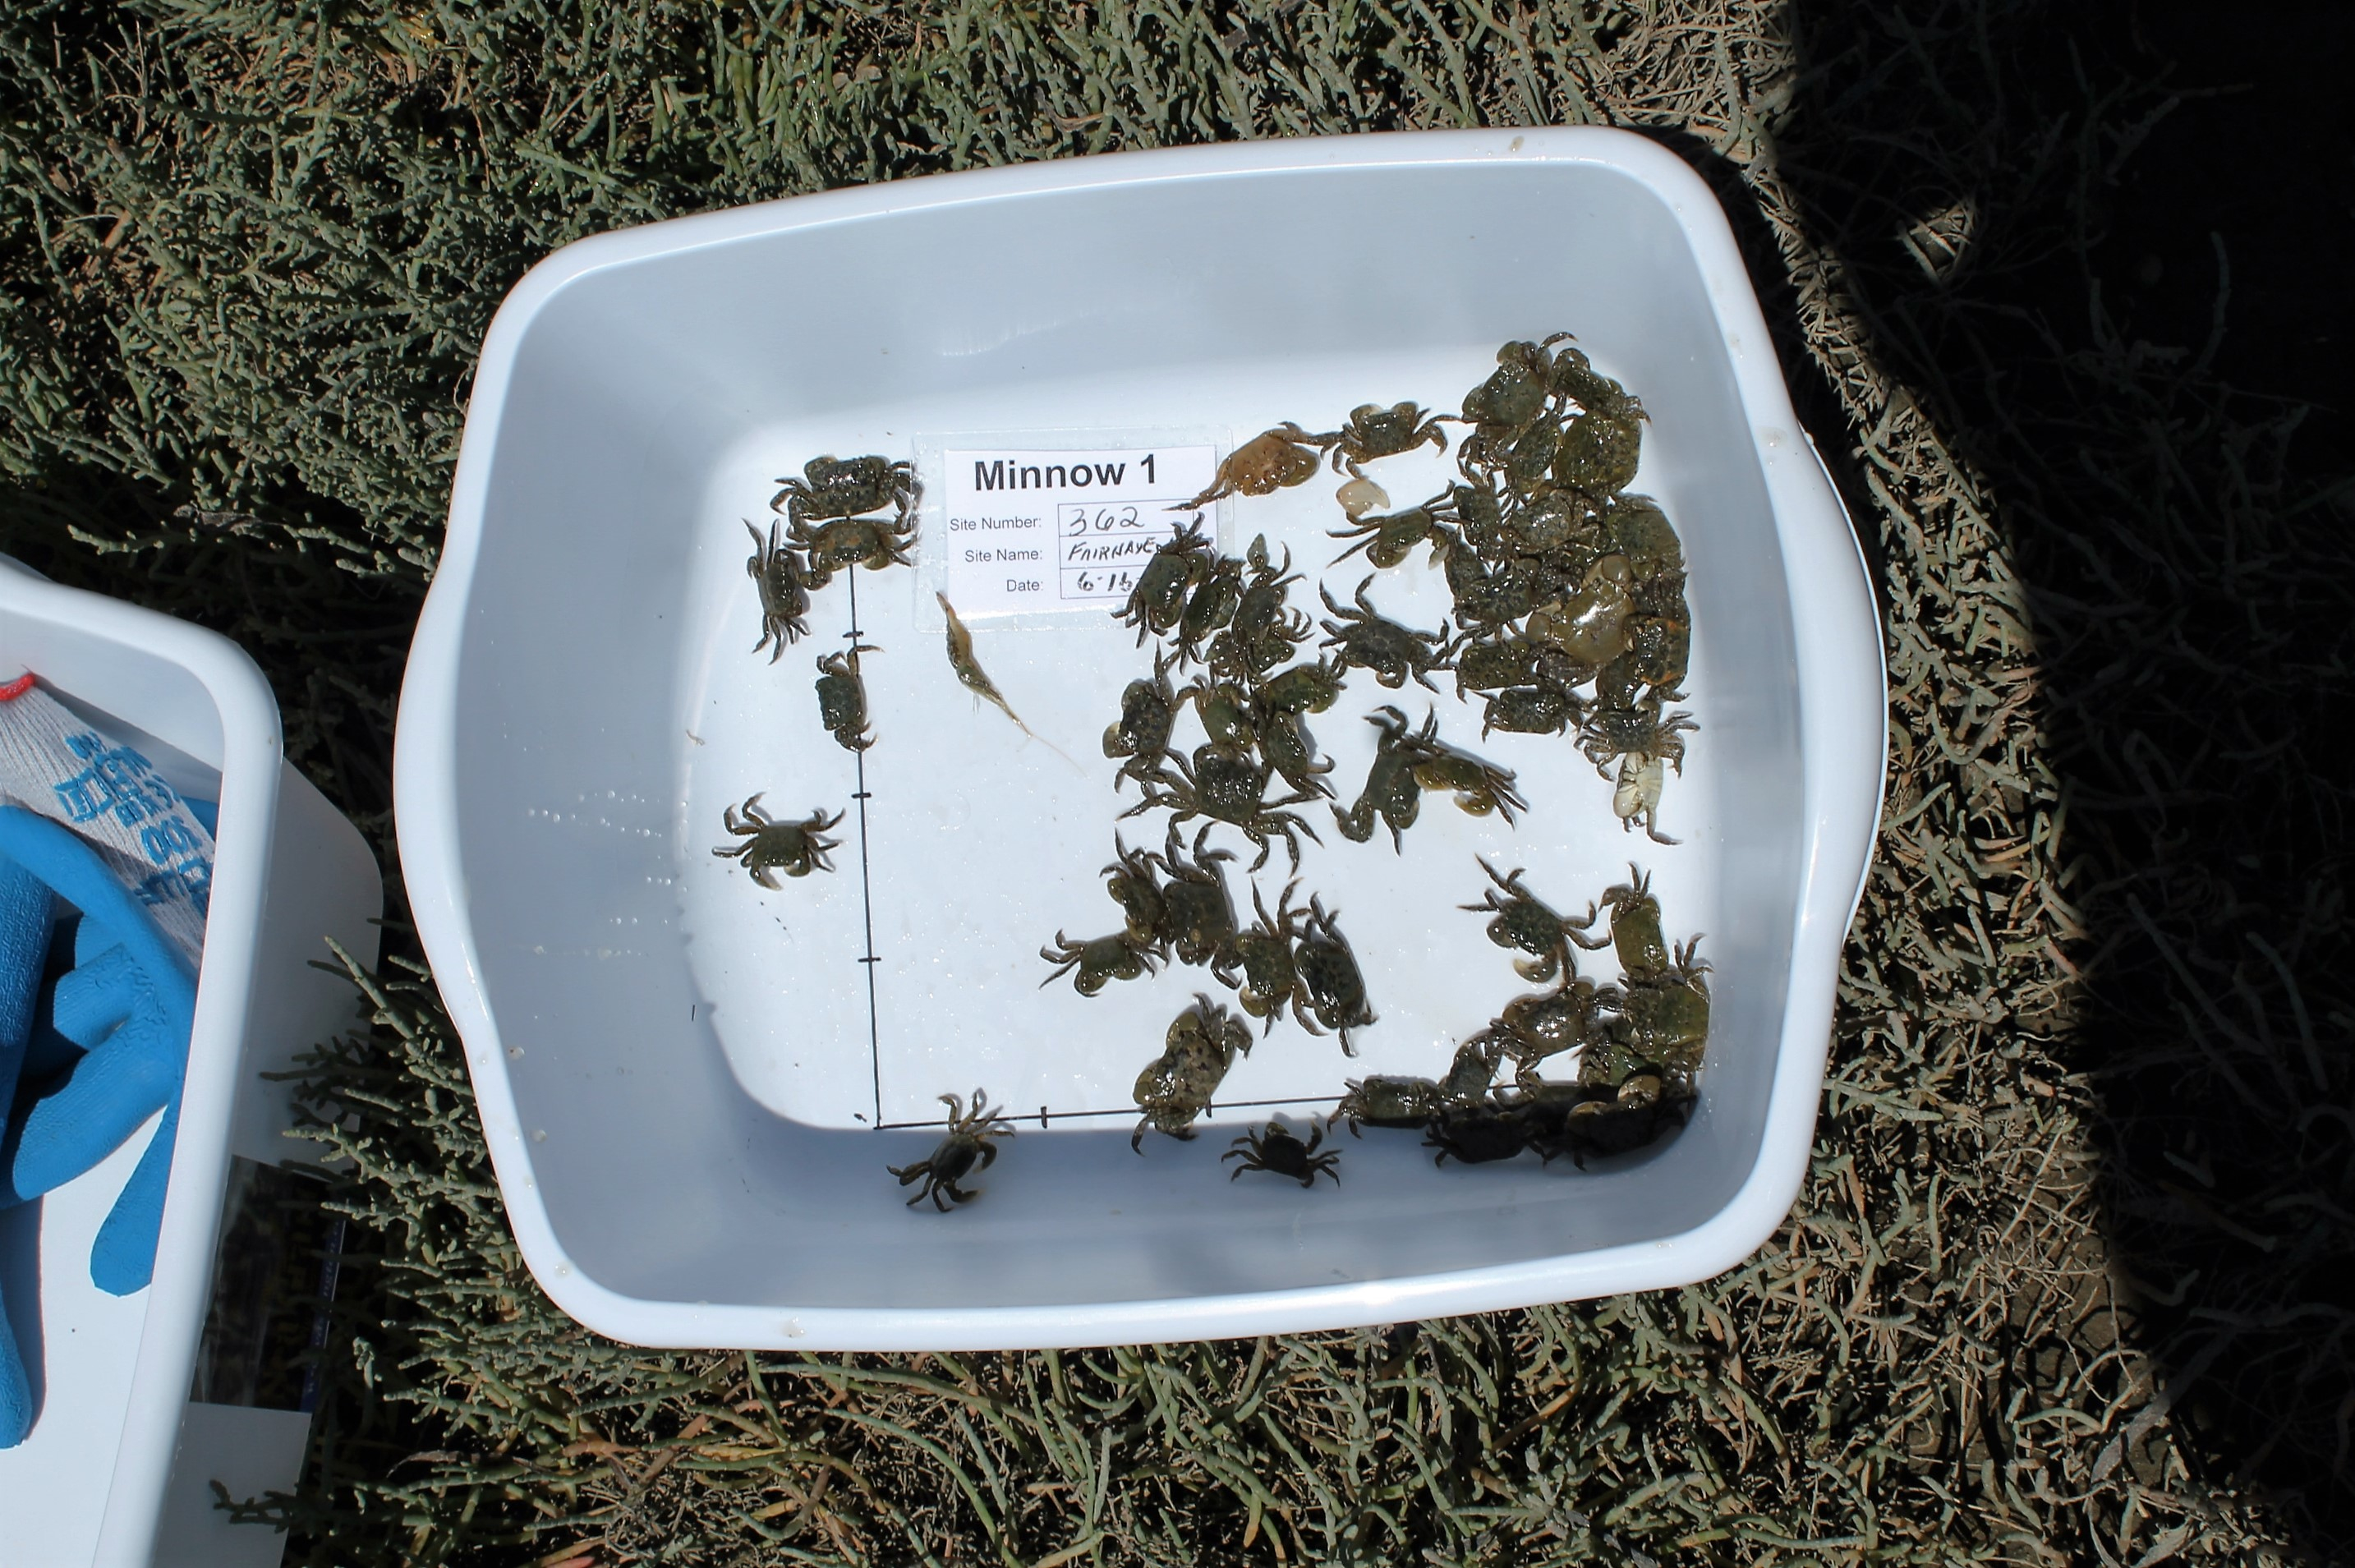 The day's catch from one inspection minnow trap awaits at Post Point Lagoon in Fairhaven. In all, six traps are set for each count. The crabs are measured for width in millimeters, sexed and counted before being turned loose again.